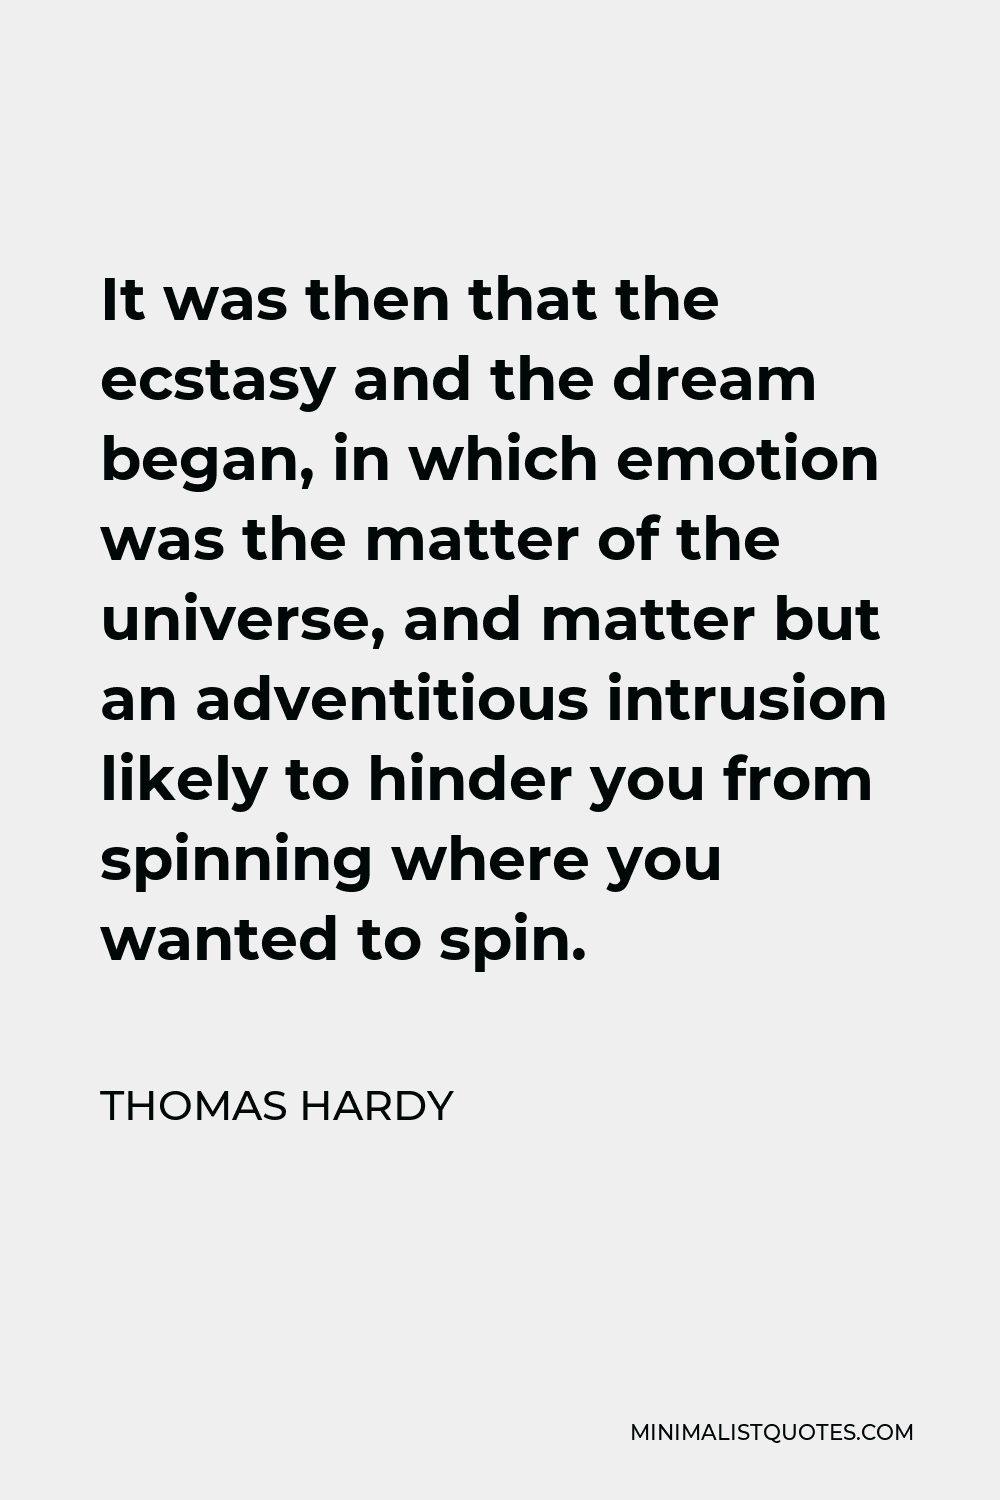 Thomas Hardy Quote - It was then that the ecstasy and the dream began, in which emotion was the matter of the universe, and matter but an adventitious intrusion likely to hinder you from spinning where you wanted to spin.